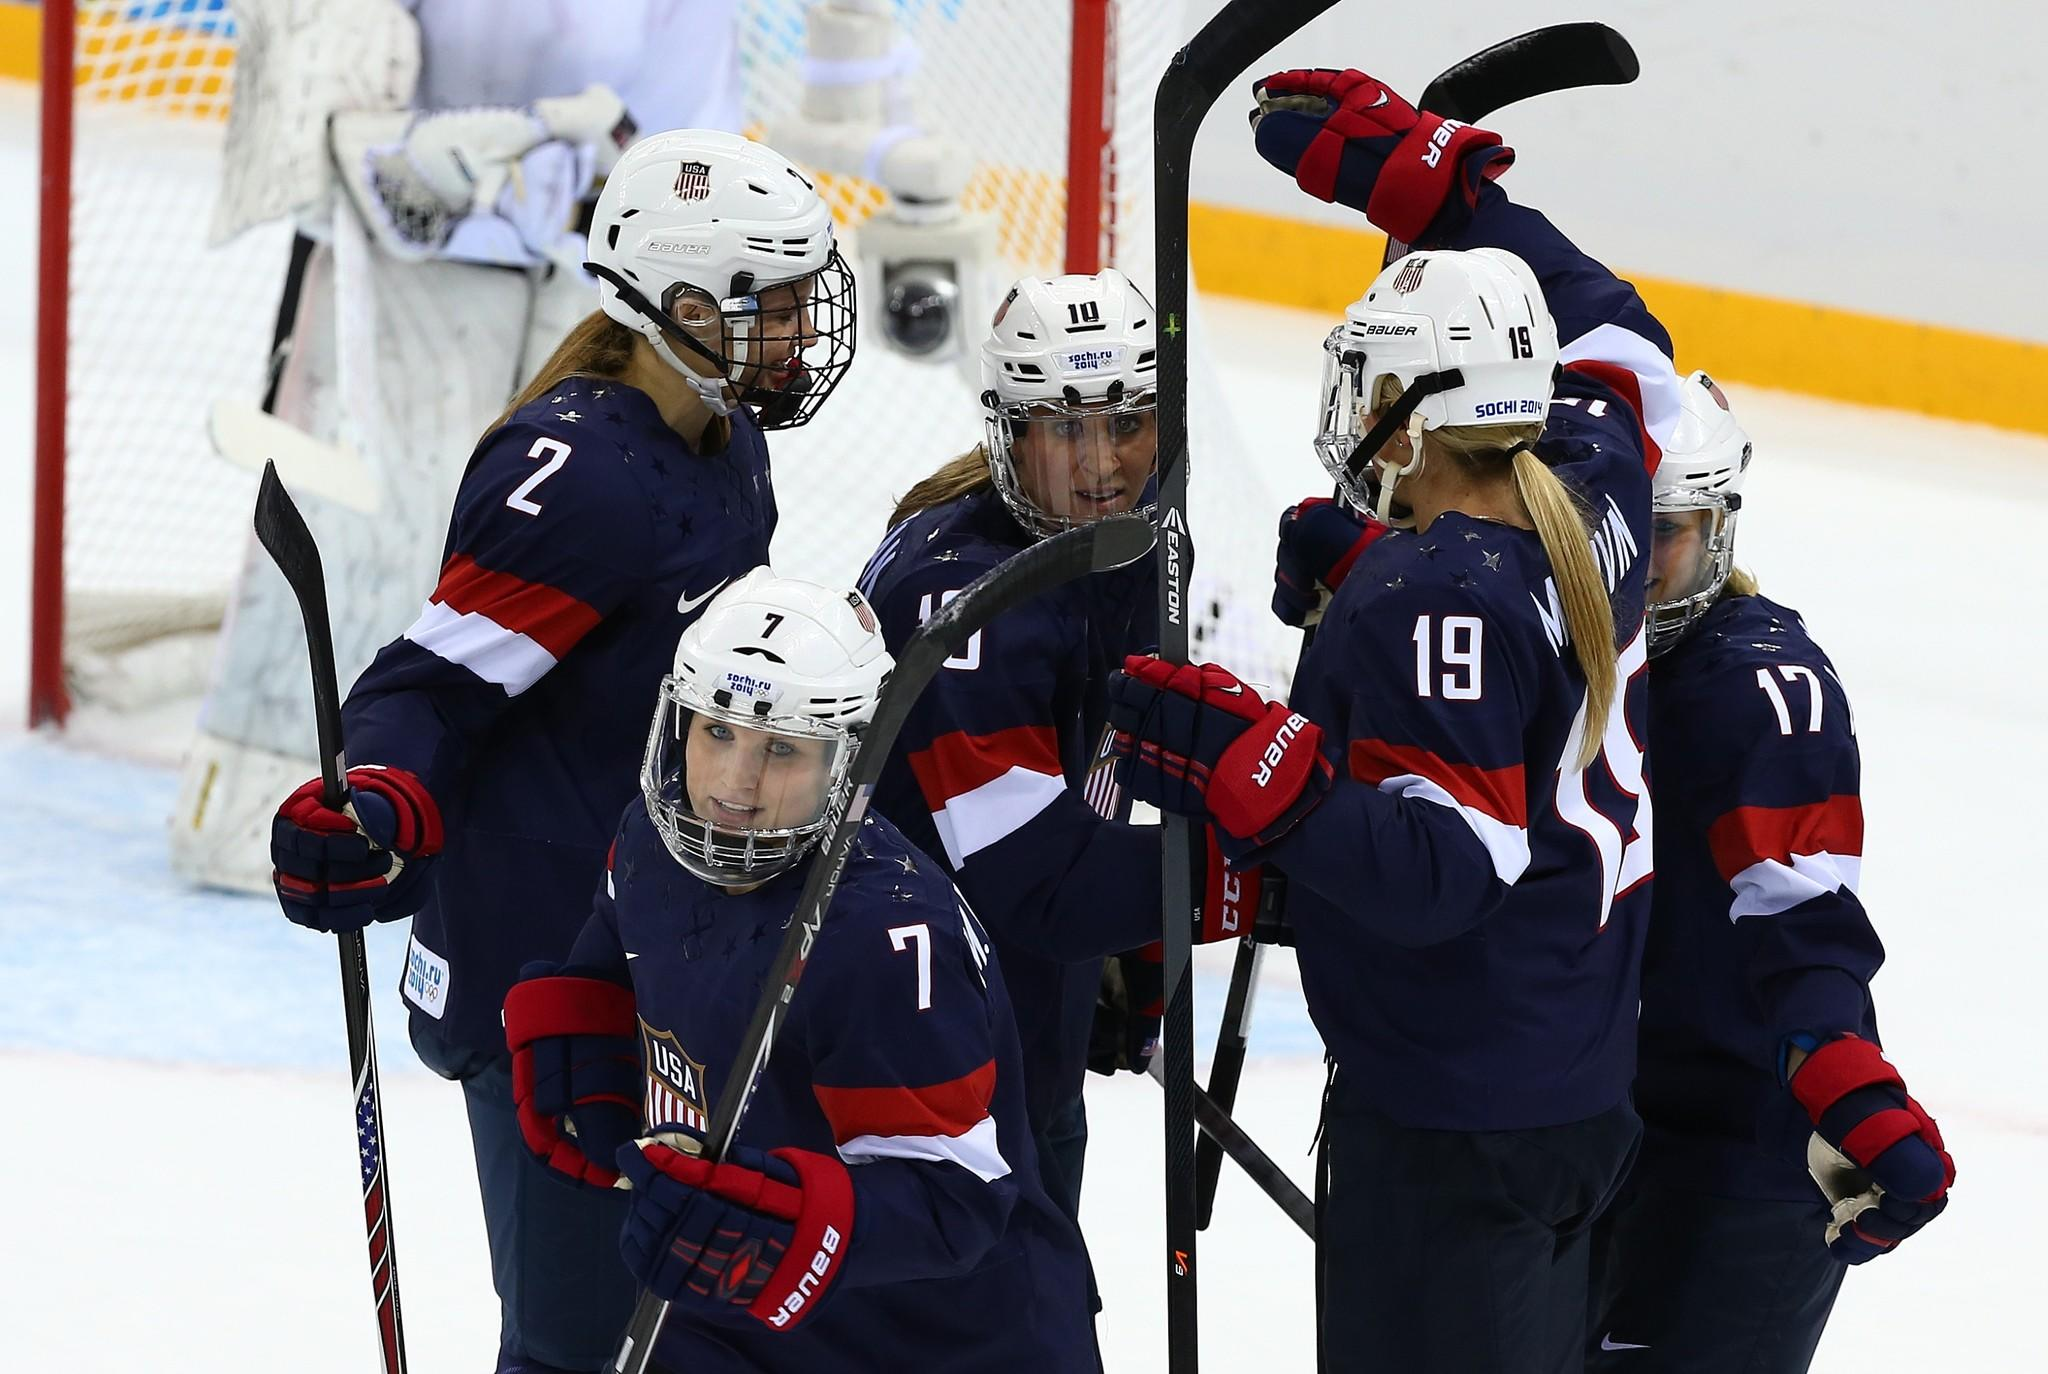 Monique Lamoureux (7) of United States celebrates with teammates after scoring her team's sixth goal in the second period during the Women's Ice Hockey Preliminary Round Group A game against Switzerland.